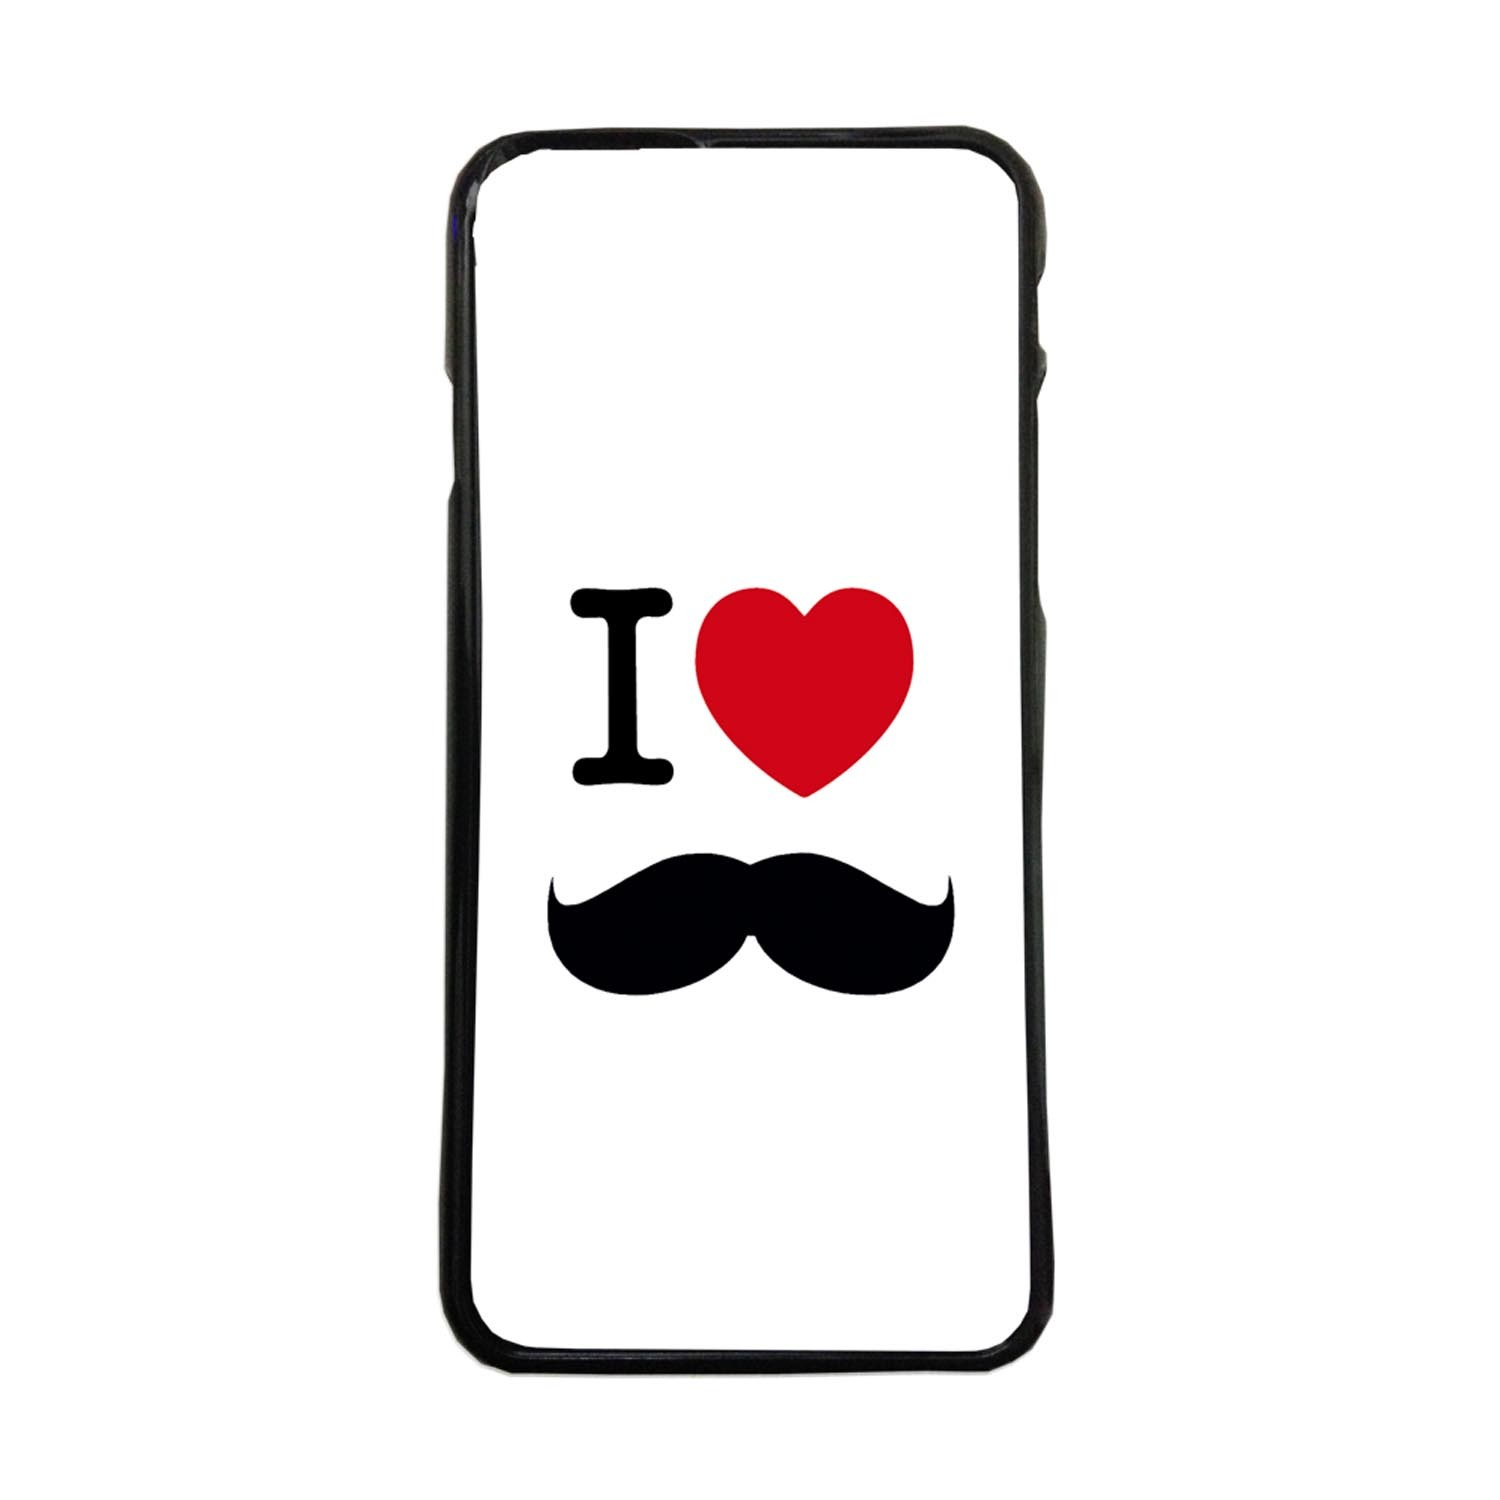 Fundas movil carcasas compatible con samsung galaxy a3 2016 I love bigotes